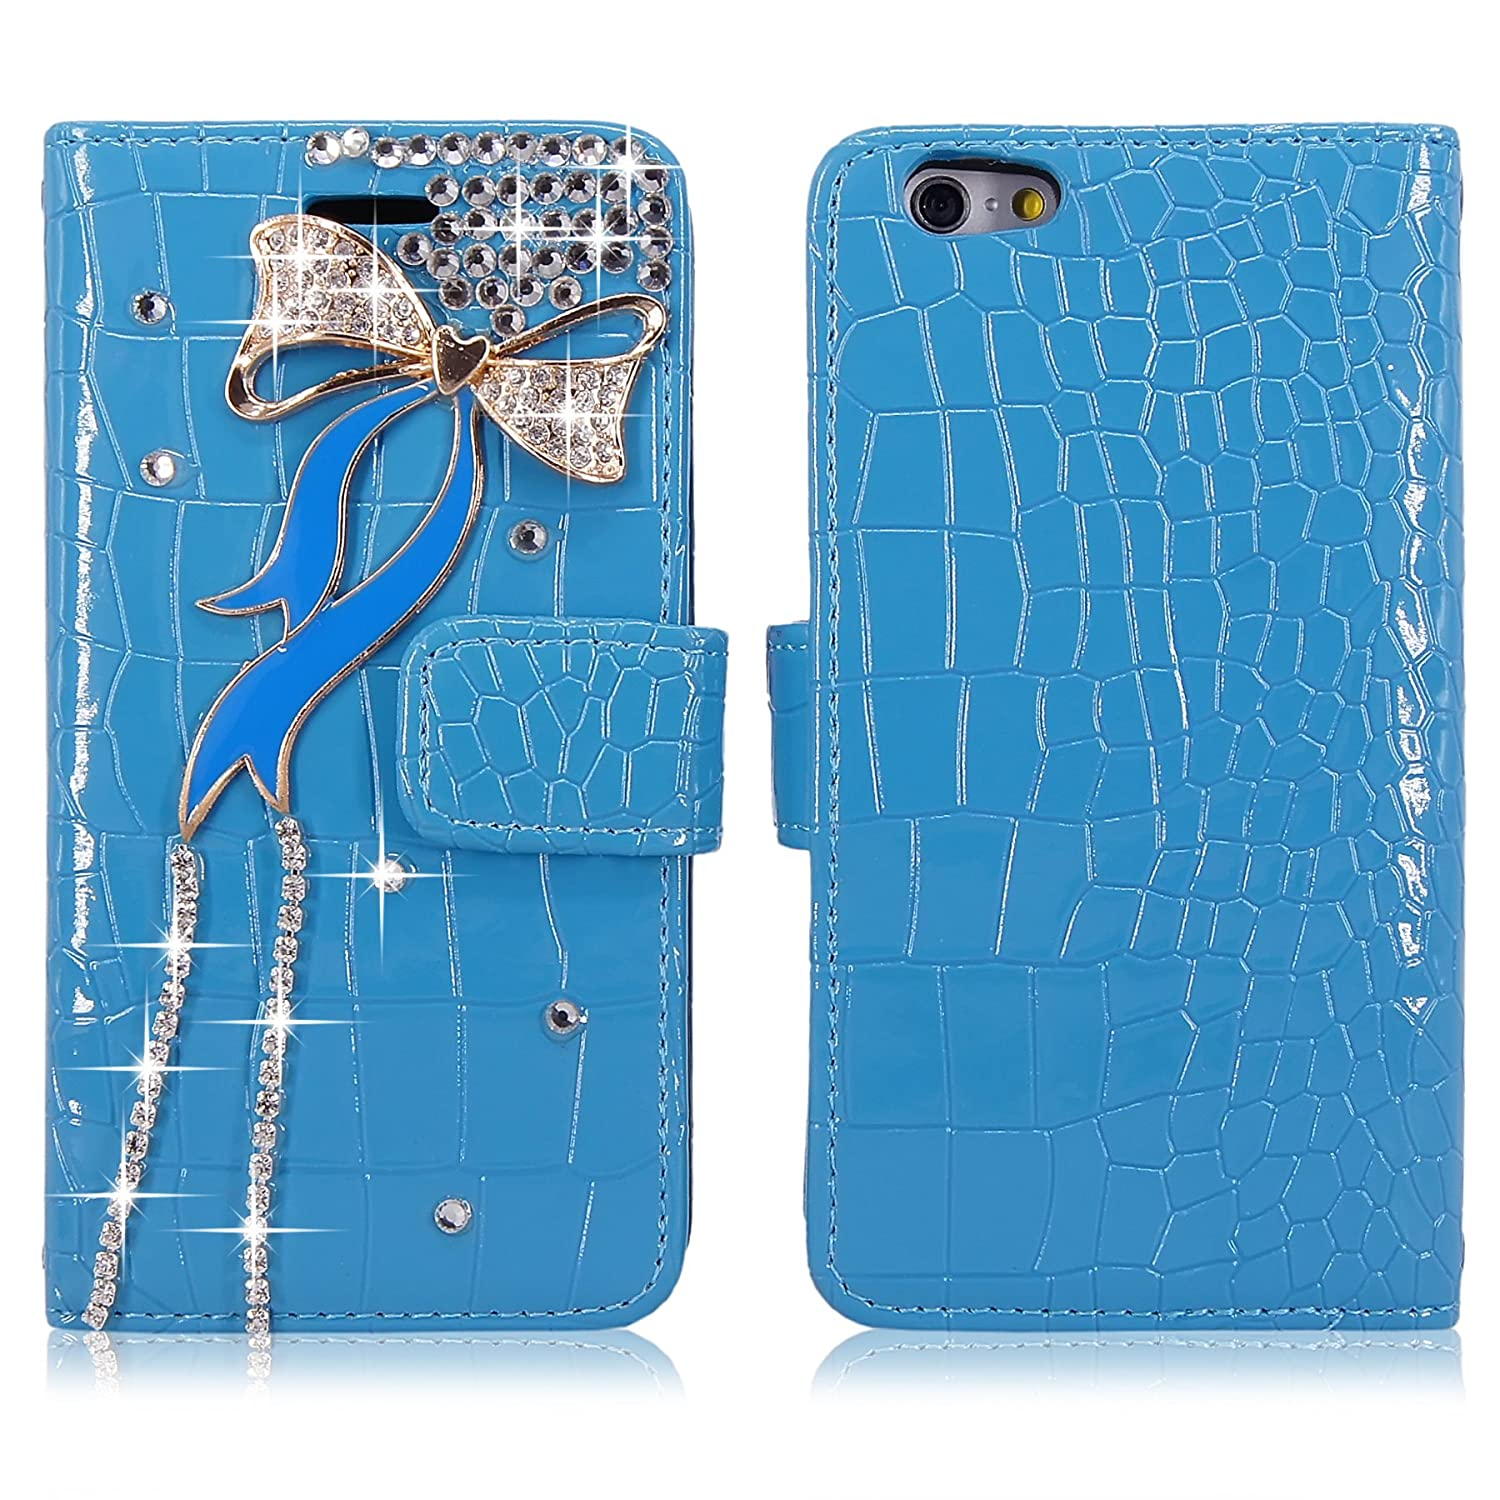 iPhone 6S Case Cellularvilla Detachable Image 1